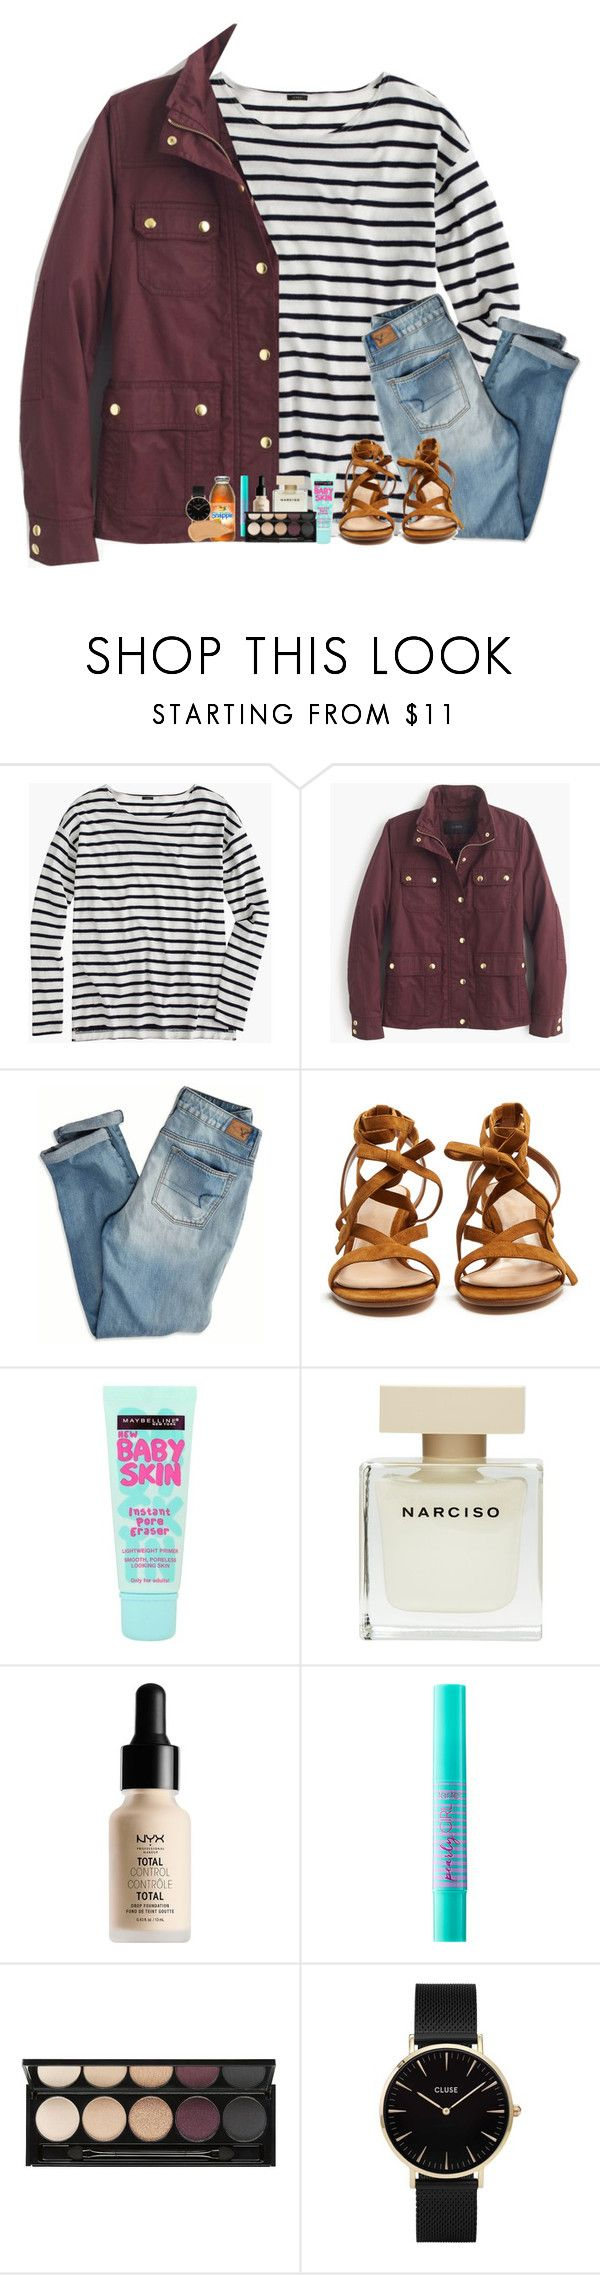 """""""Today was such a good day!!"""" by kat-attack ❤ liked on Polyvore featuring J.Crew, American Eagle Outfitters, Gianvito Rossi, Maybelline, Narciso Rodriguez, NYX, tarte, Witchery, CLUSE and NARS Cosmetics"""